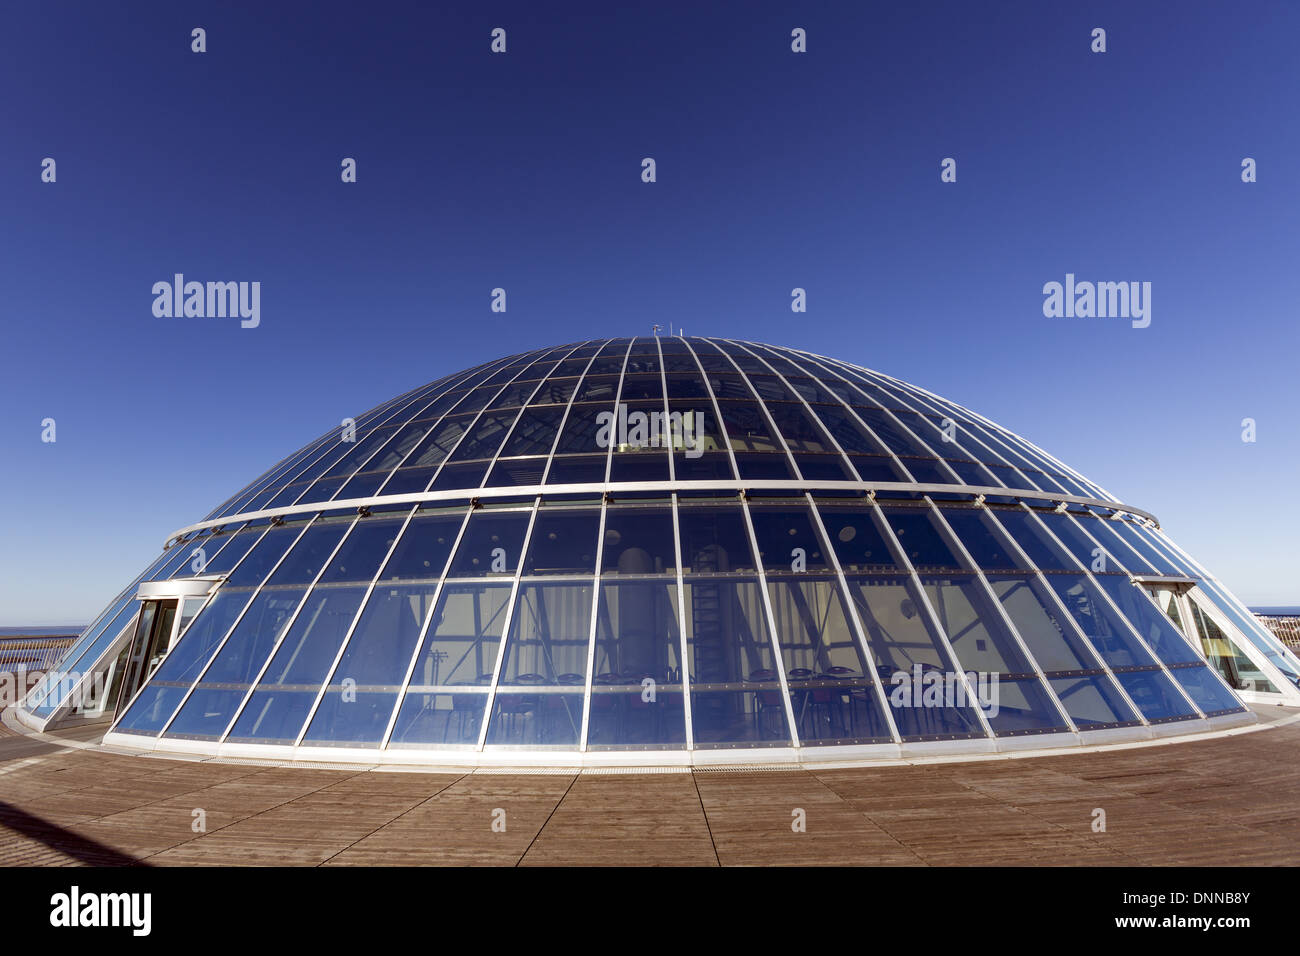 Glass dome of the Perlan building in Reykjavik, the capital of Iceland - Stock Image